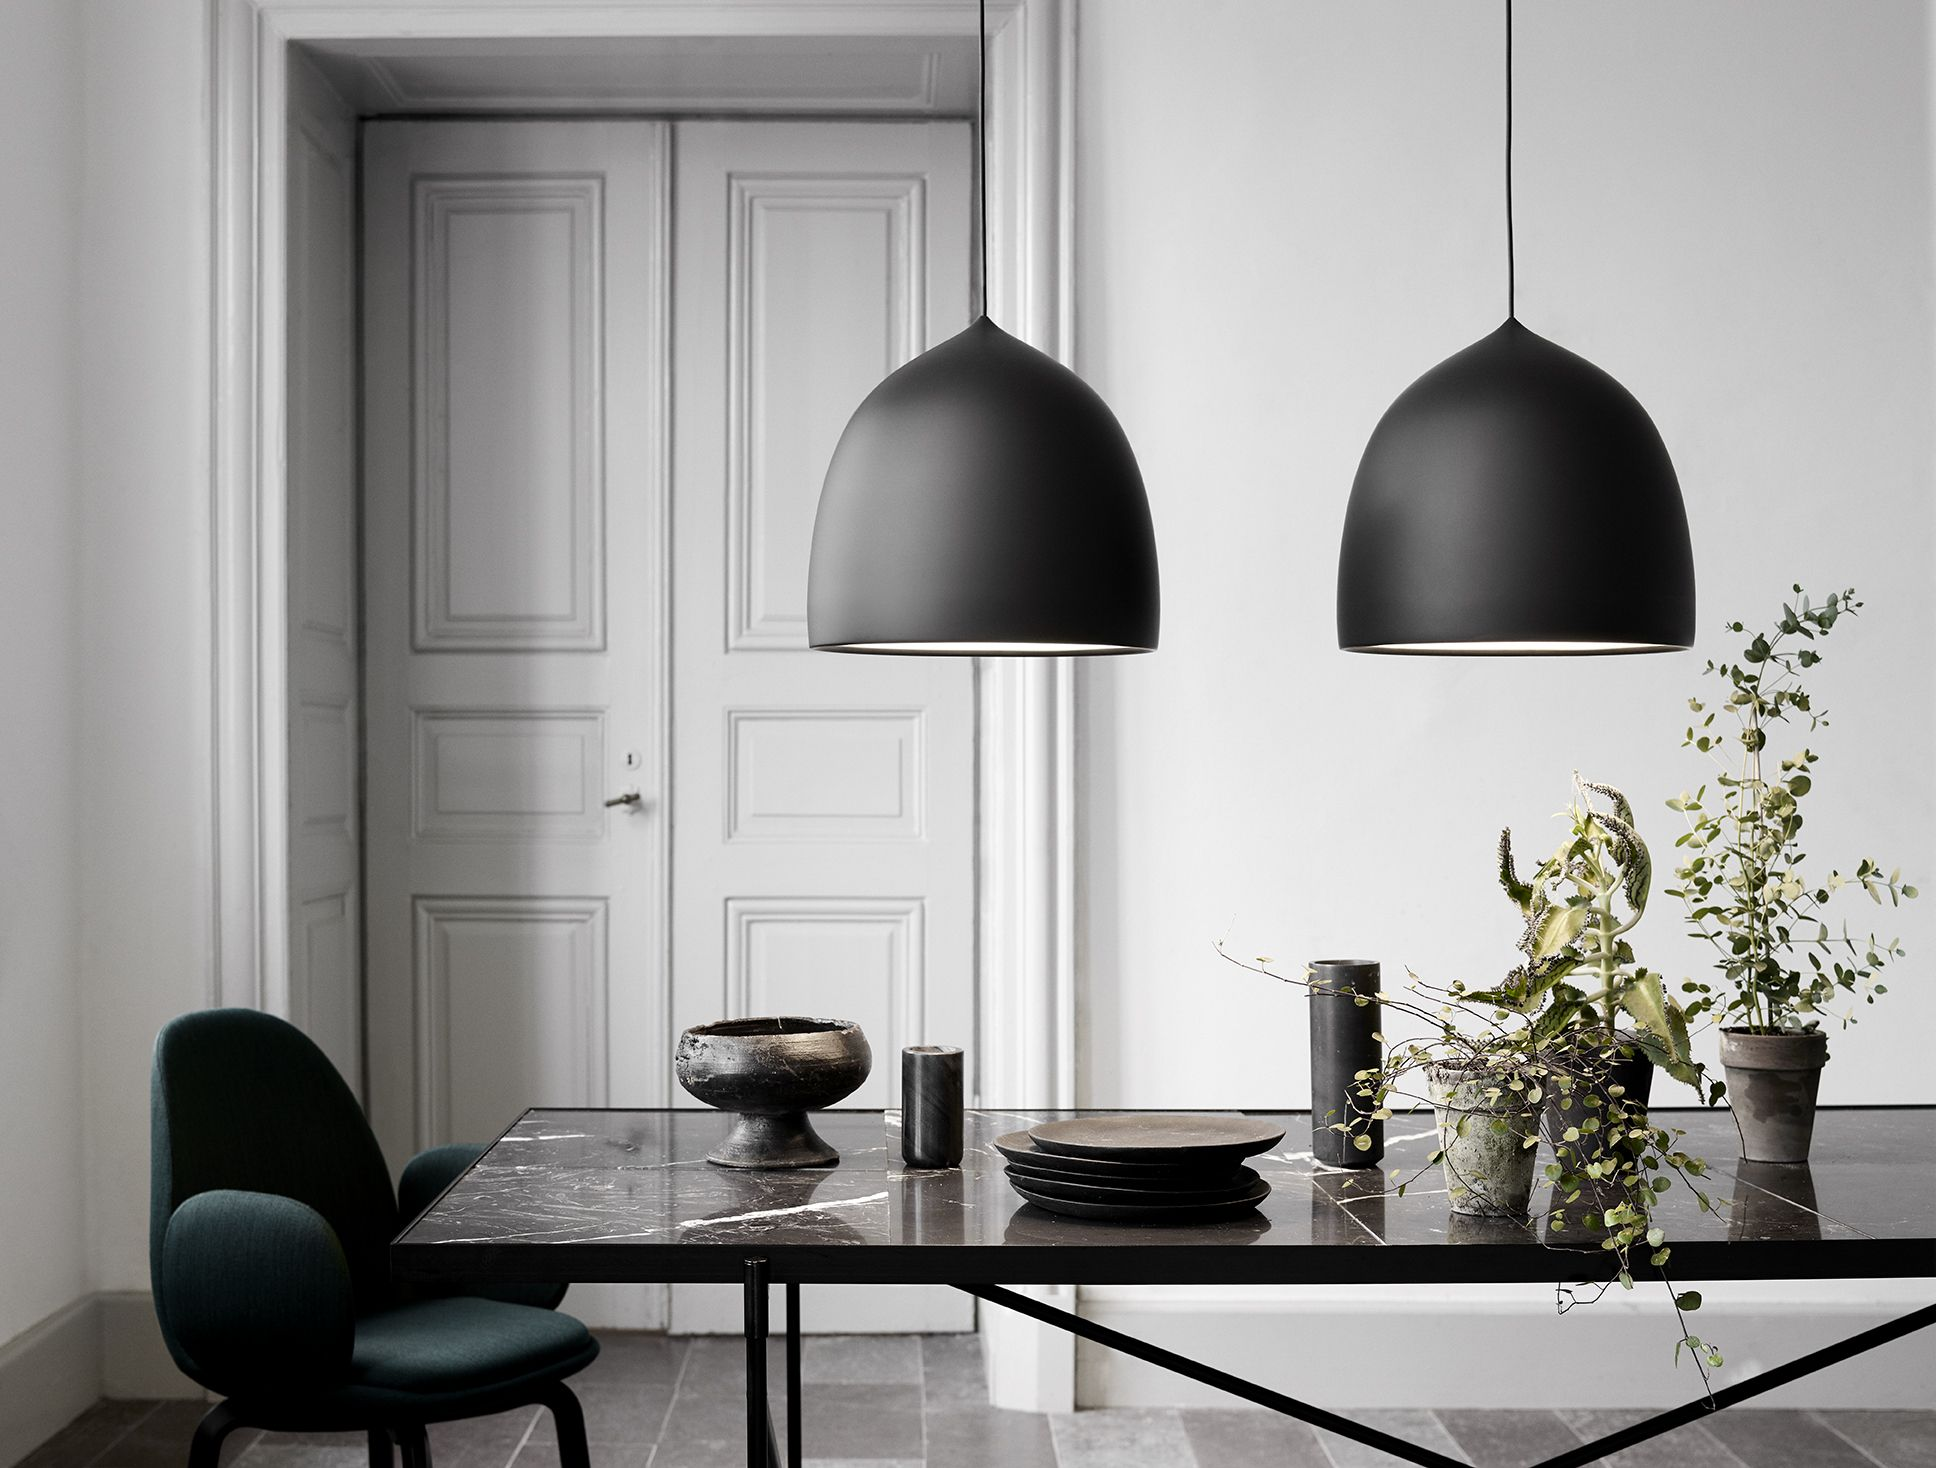 GamFratesi's inspiration for the Suspence™ lamp series has